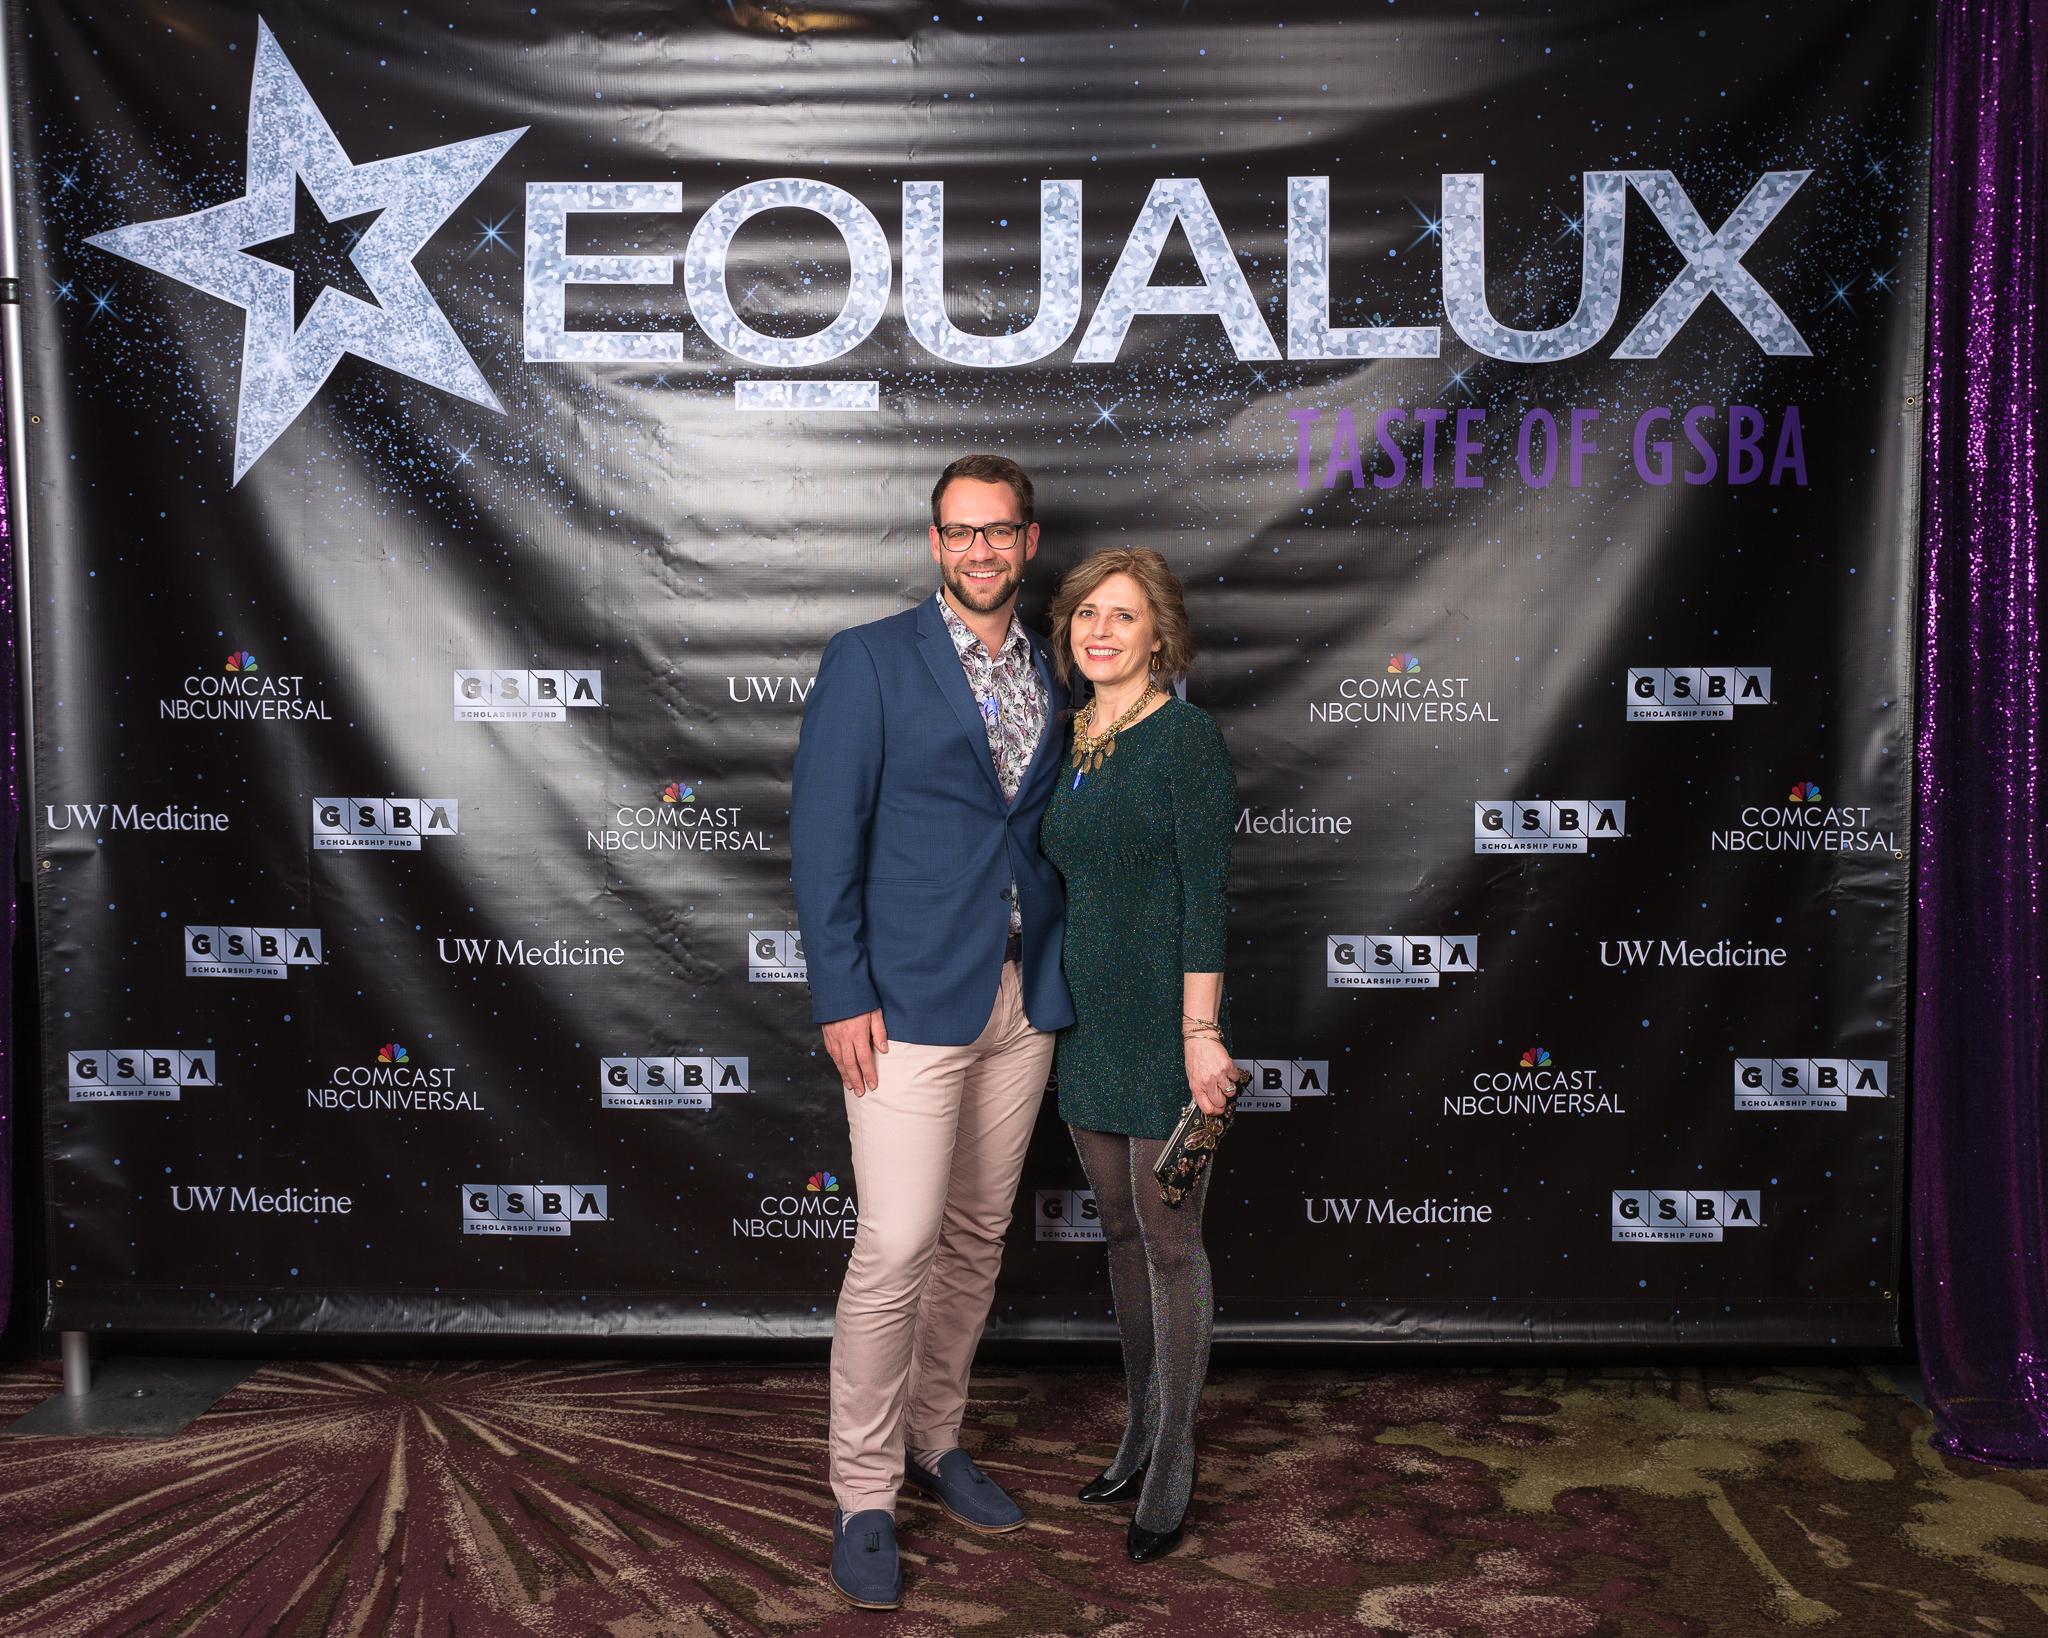 111718_GSBA EQUALUX at The Westin Seattle (Credit- Nate Gowdy)-74.jpg